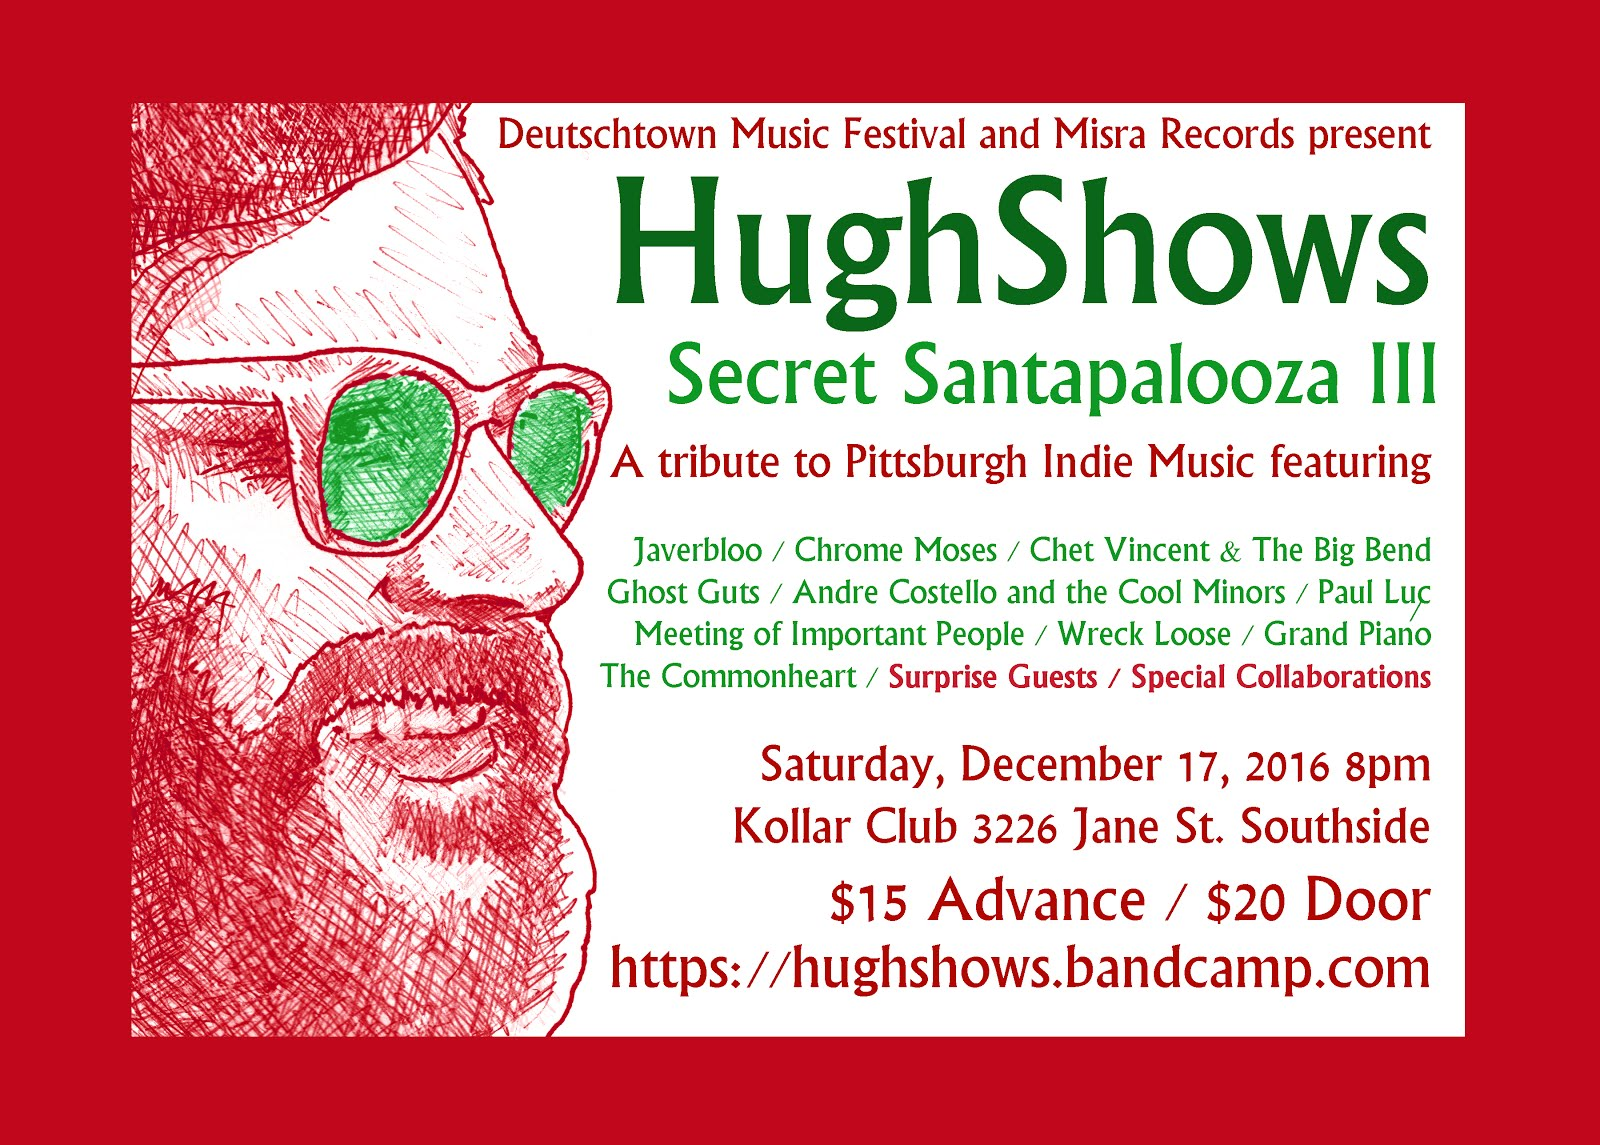 HughShows Seecret Santapalooza 3 on Saturday, December 17